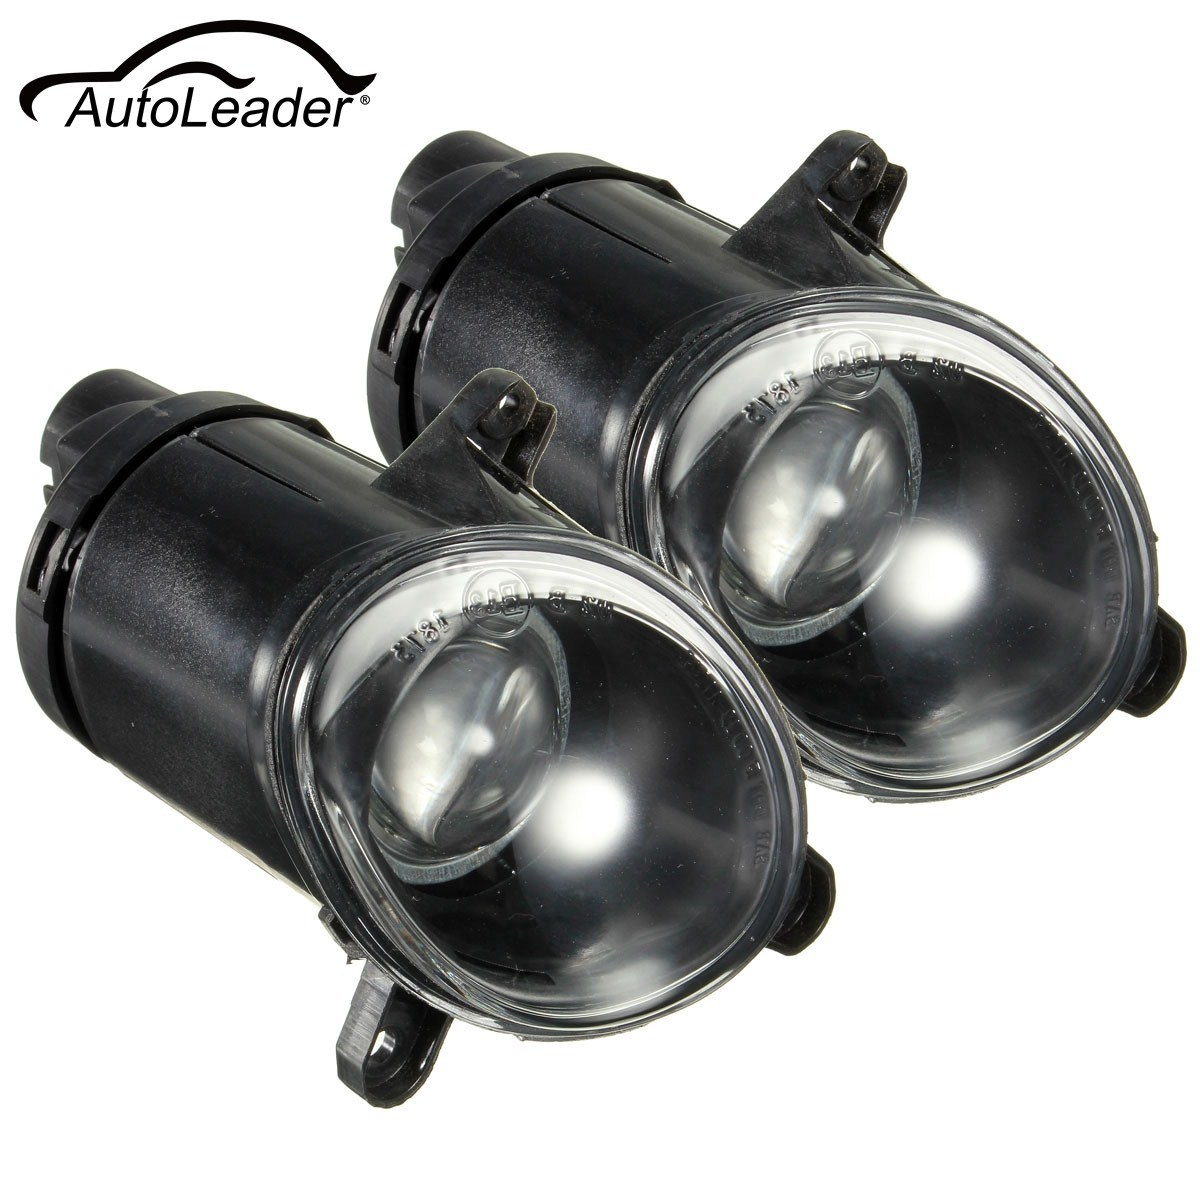 Pair Front Bumper Fog Light Driving Lamp For VW Passat 3BG B5 2000 2001-2005 H3 Bulb E13 free shipping new pair halogen front fog lamp fog light for vw t5 polo crafter transporter campmob 7h0941699b 7h0941700b